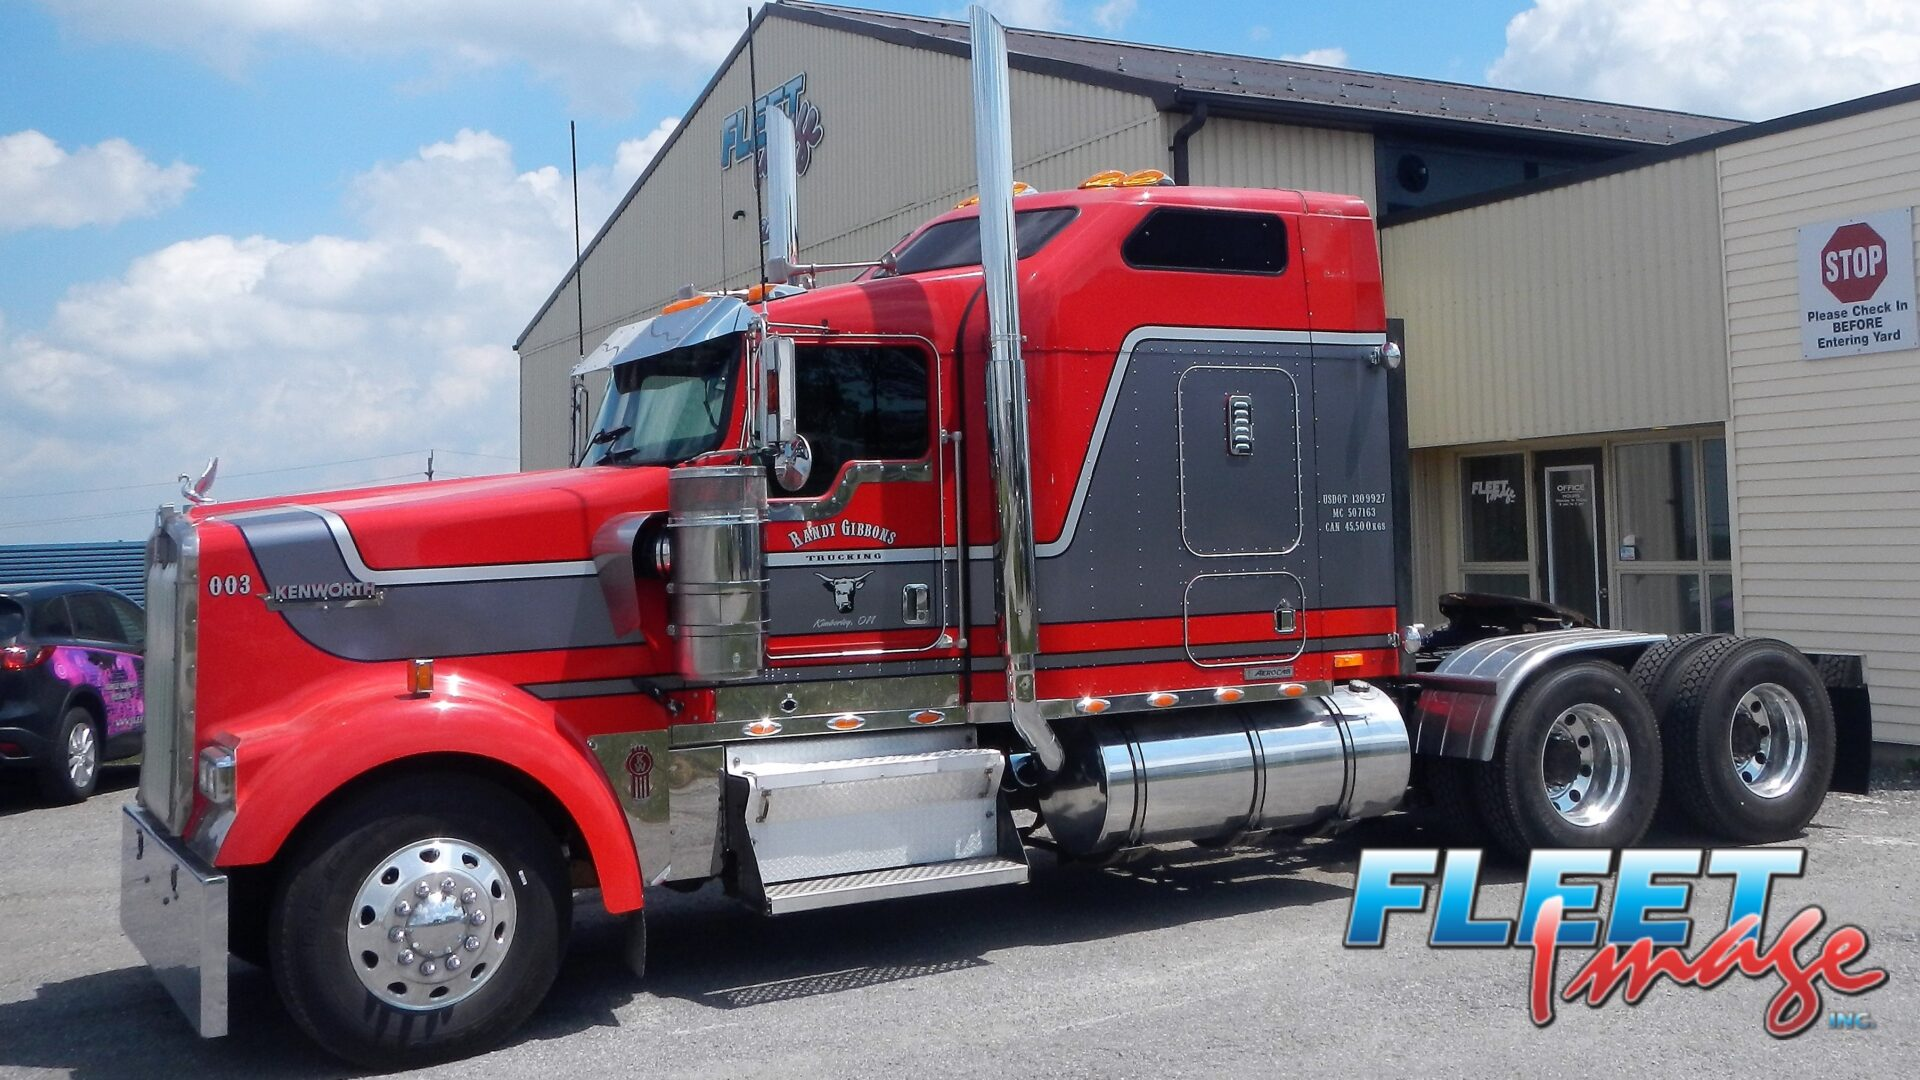 Randy Gibbons Trucking red and gray truck